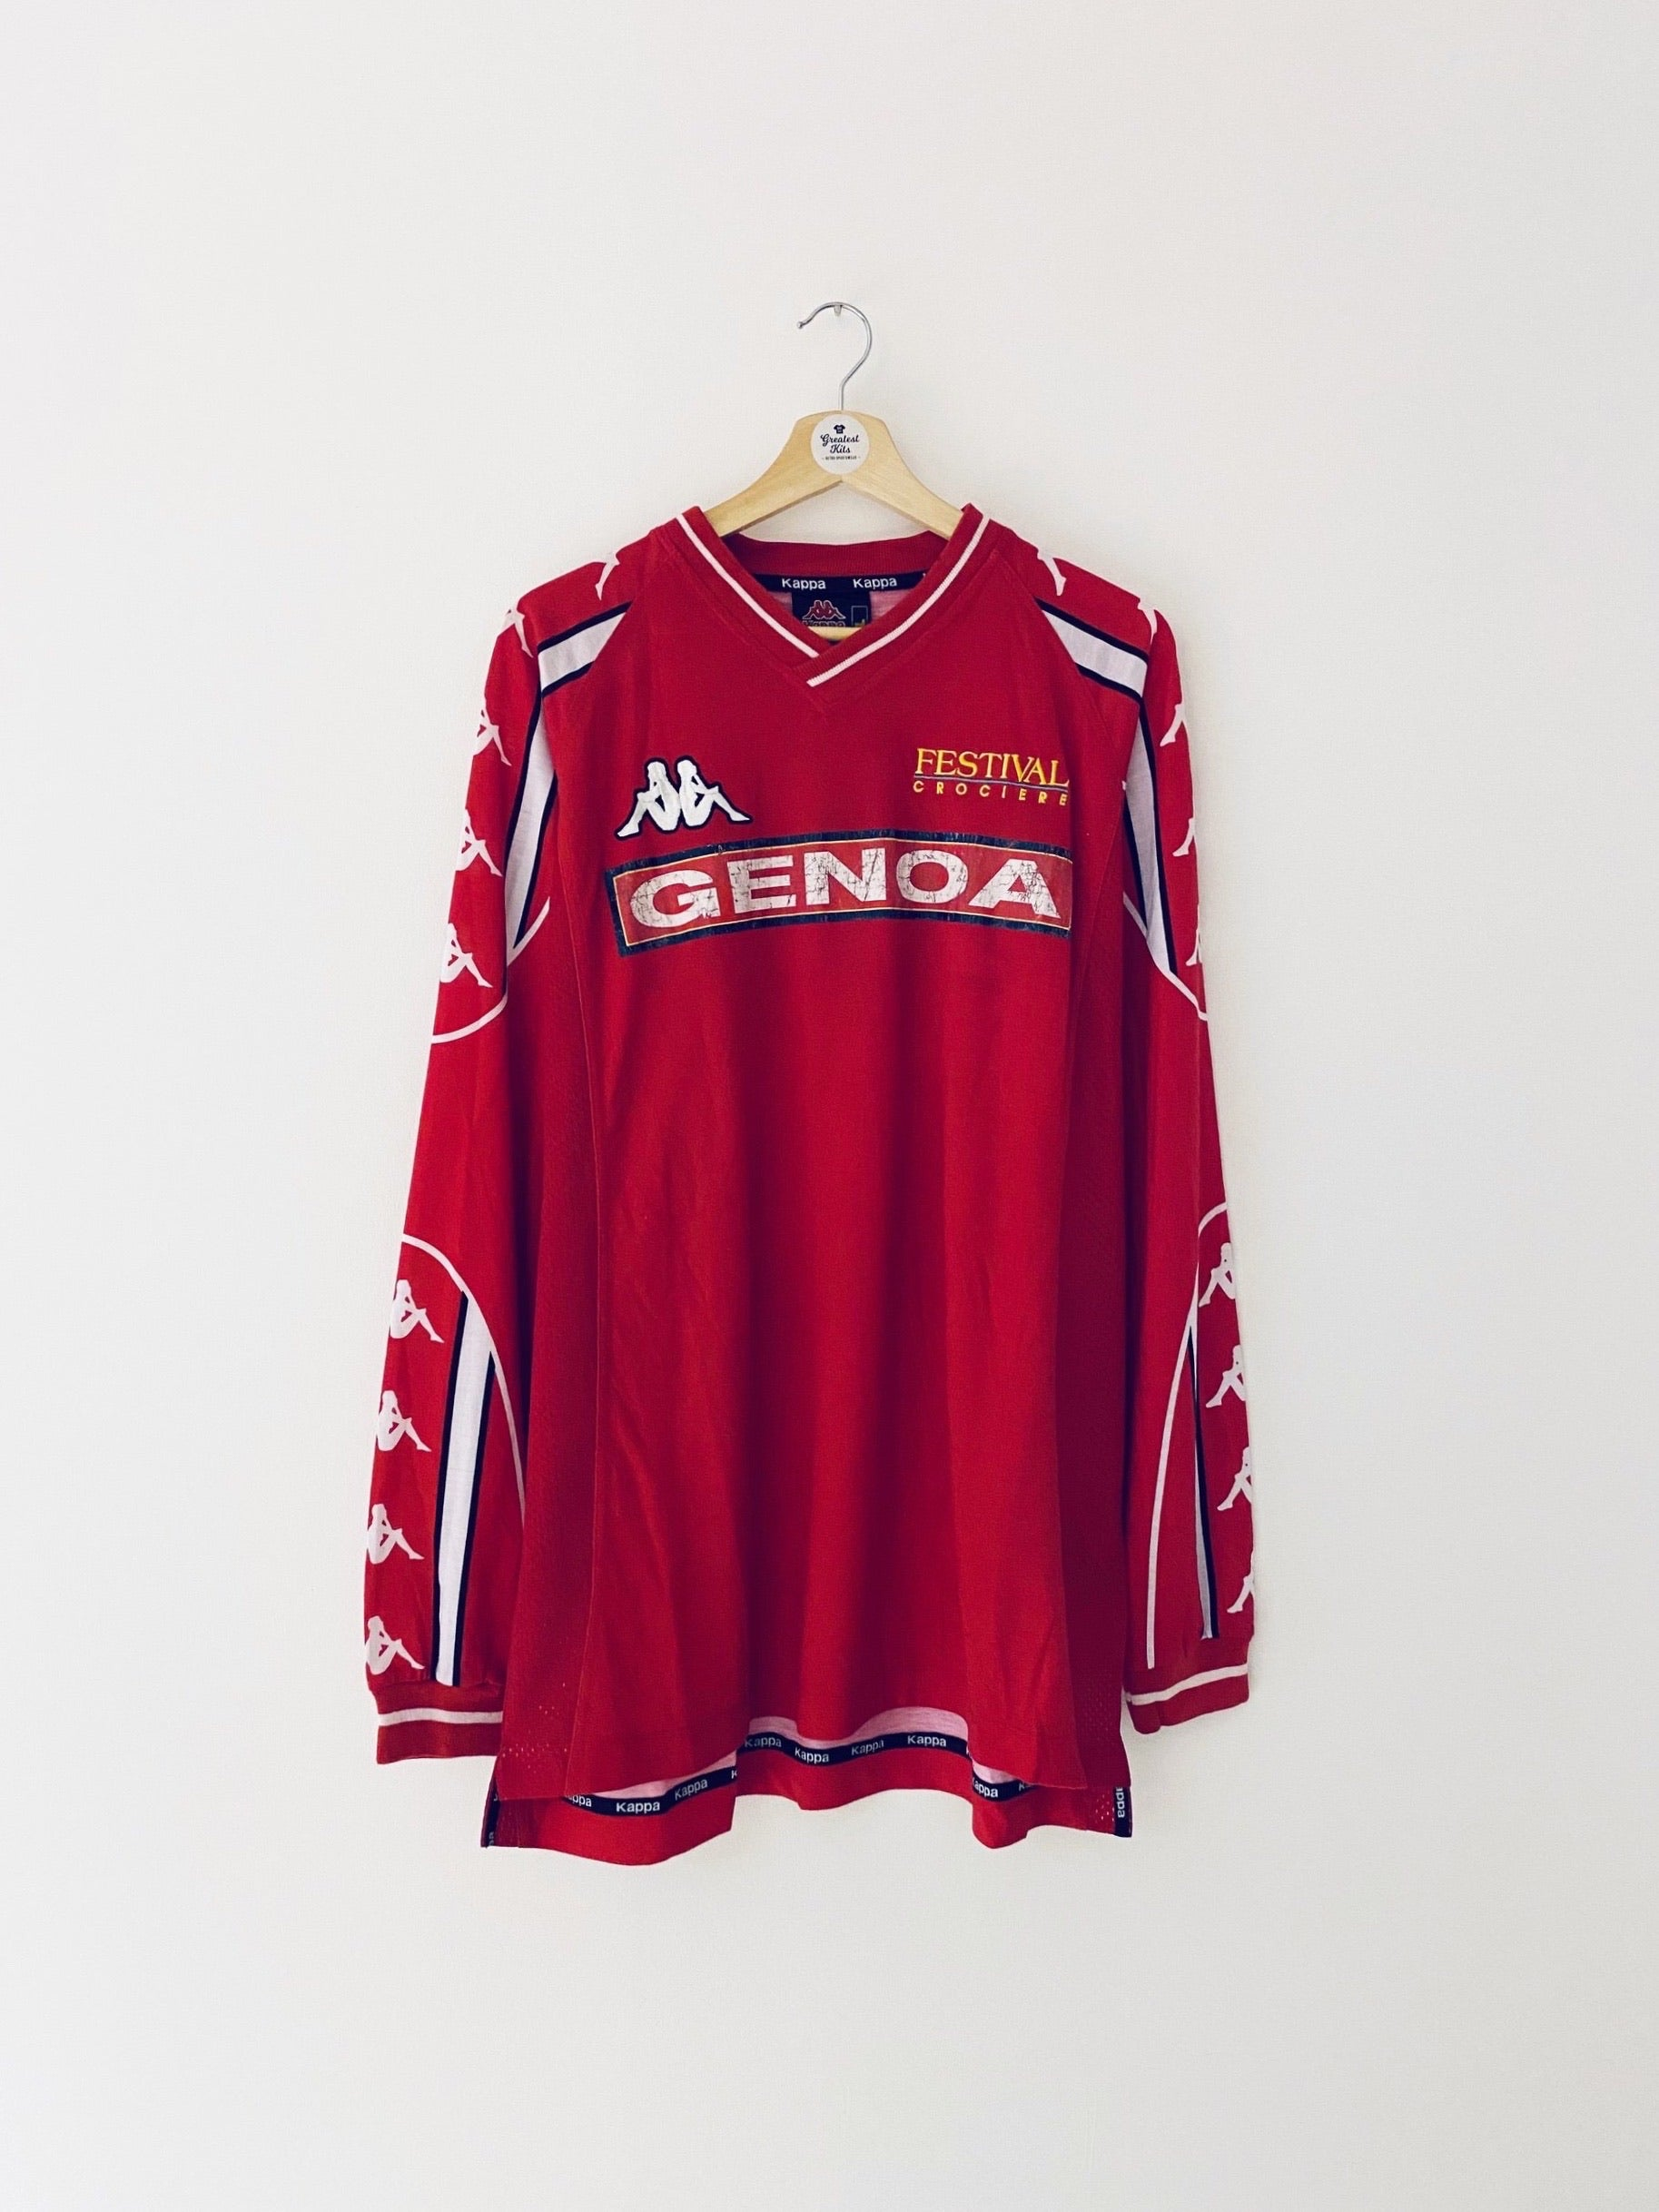 2000/01 Genoa Training L/S Shirt (XL) 6/10